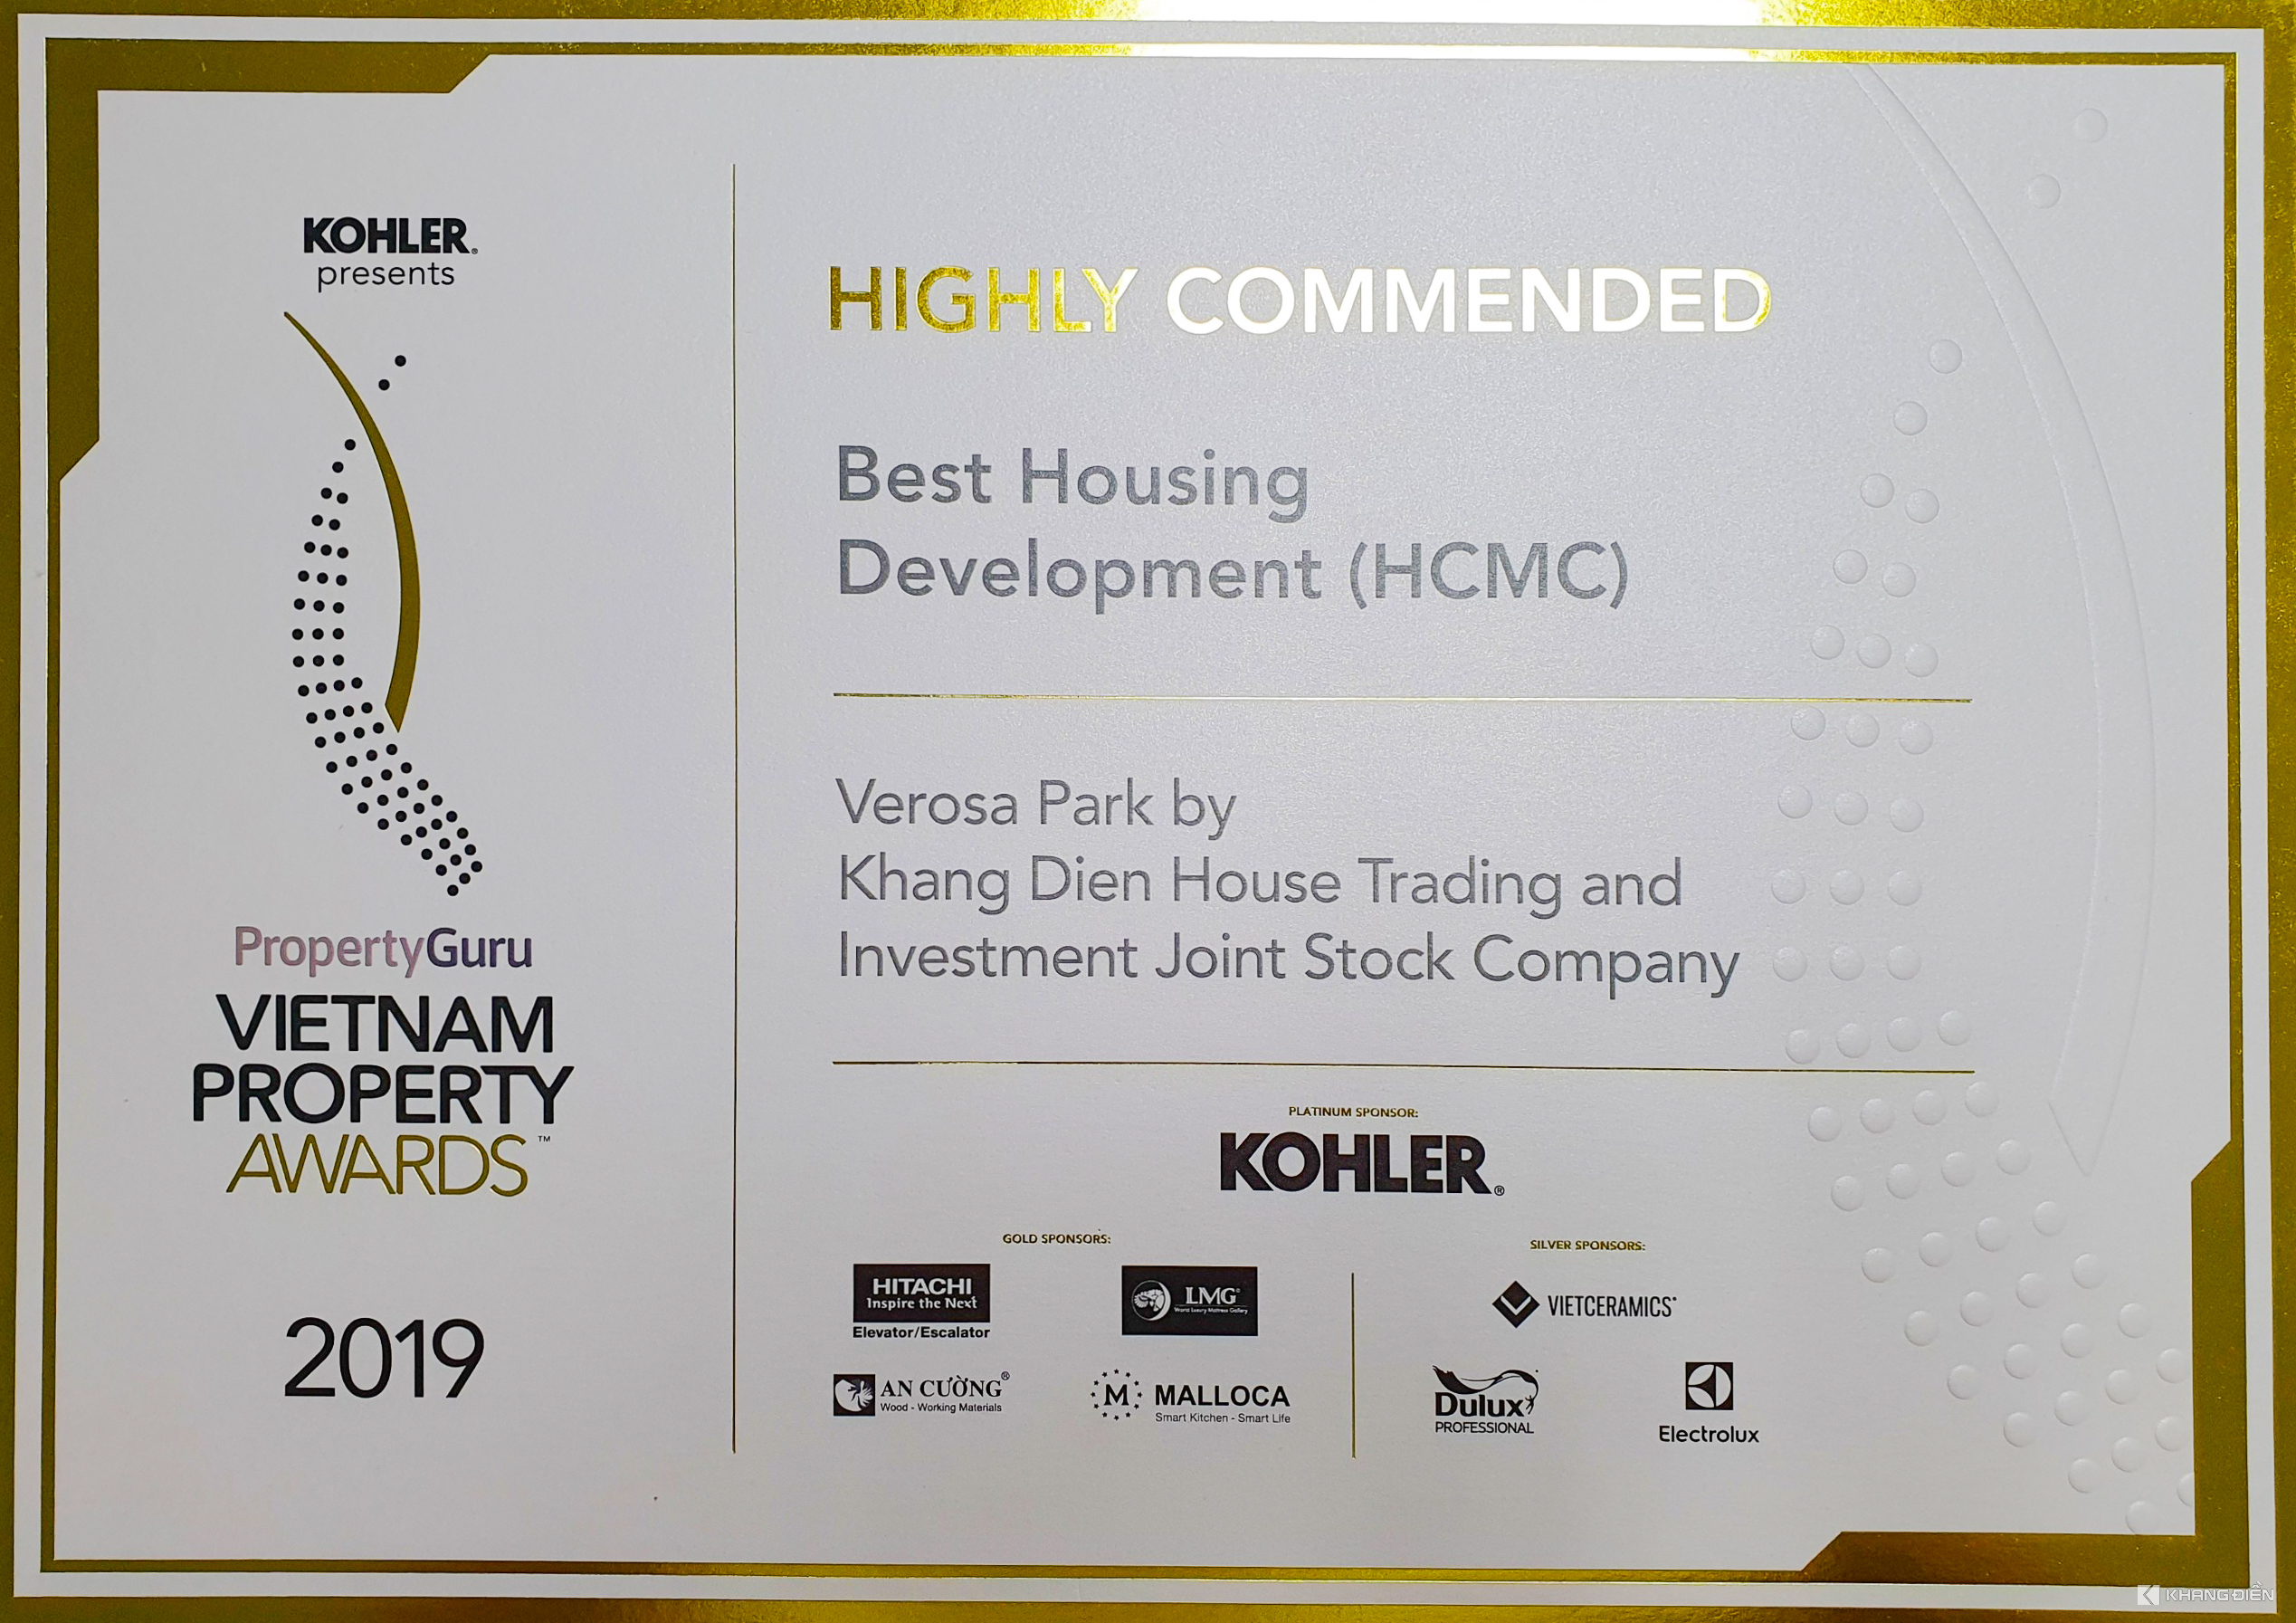 HIGH RECOMMEND BEST HOUSING DEVELOPMENT (HCMC) - VIETNAM PROPERTY AWARDS 2019